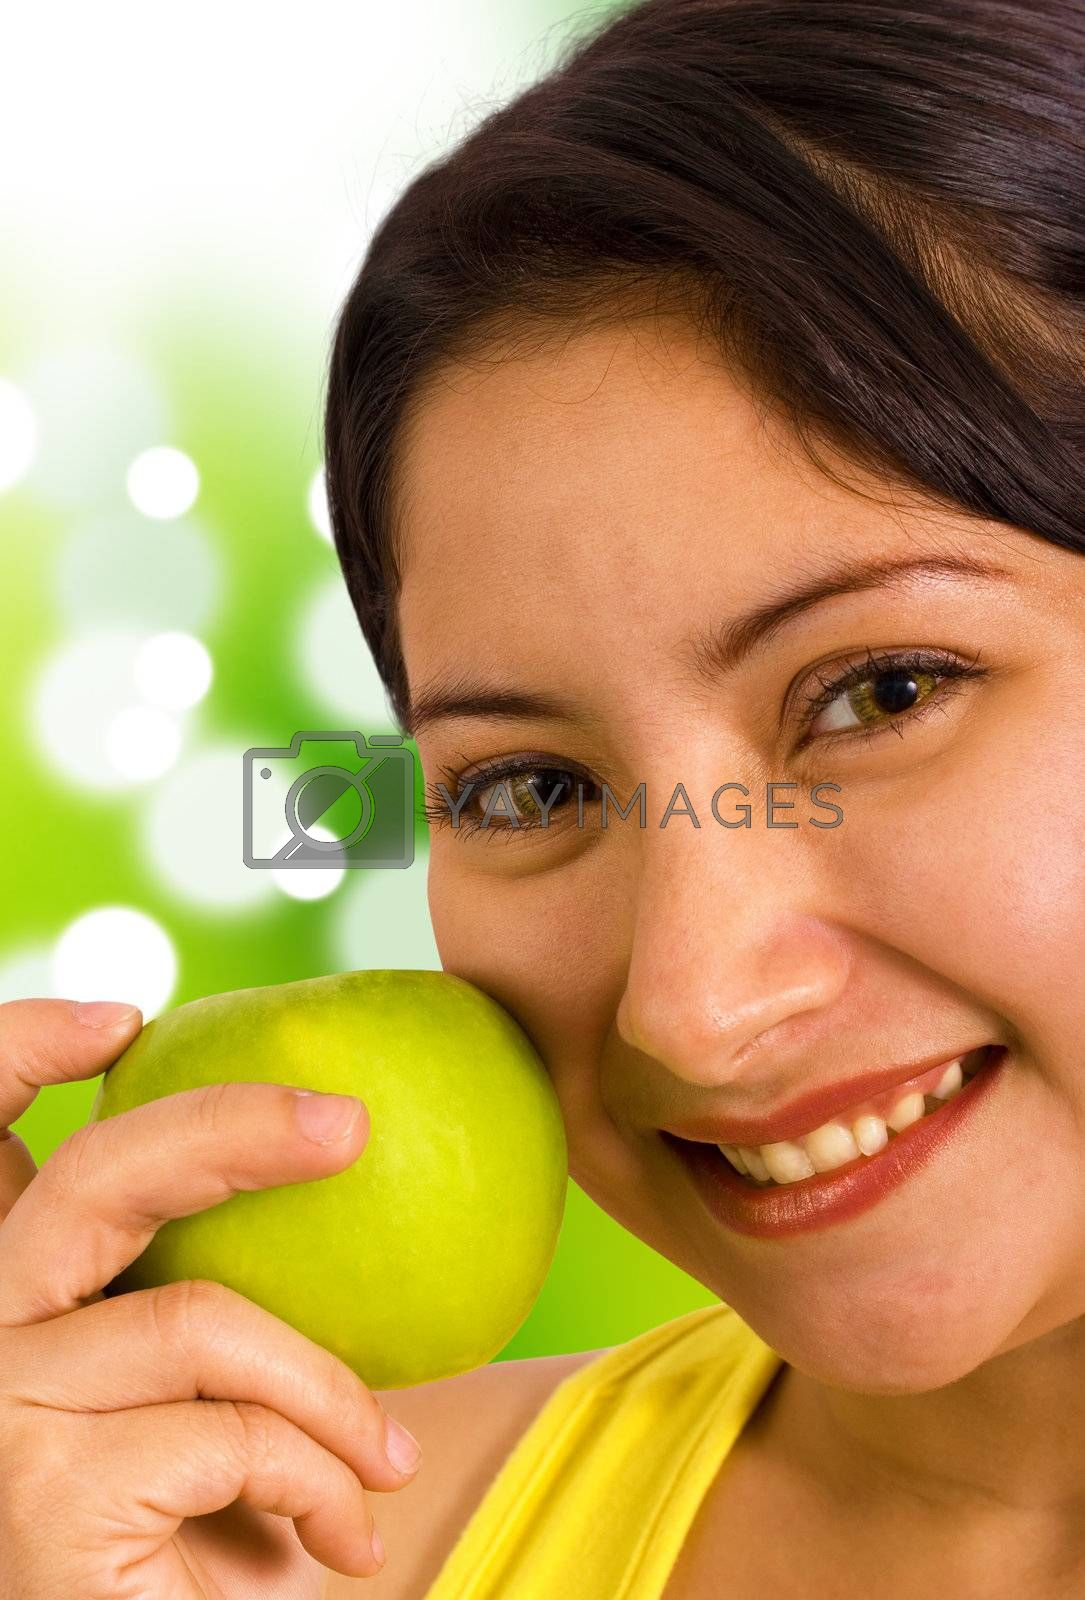 Young Lady Outside In The Sunshine Holding An Apple